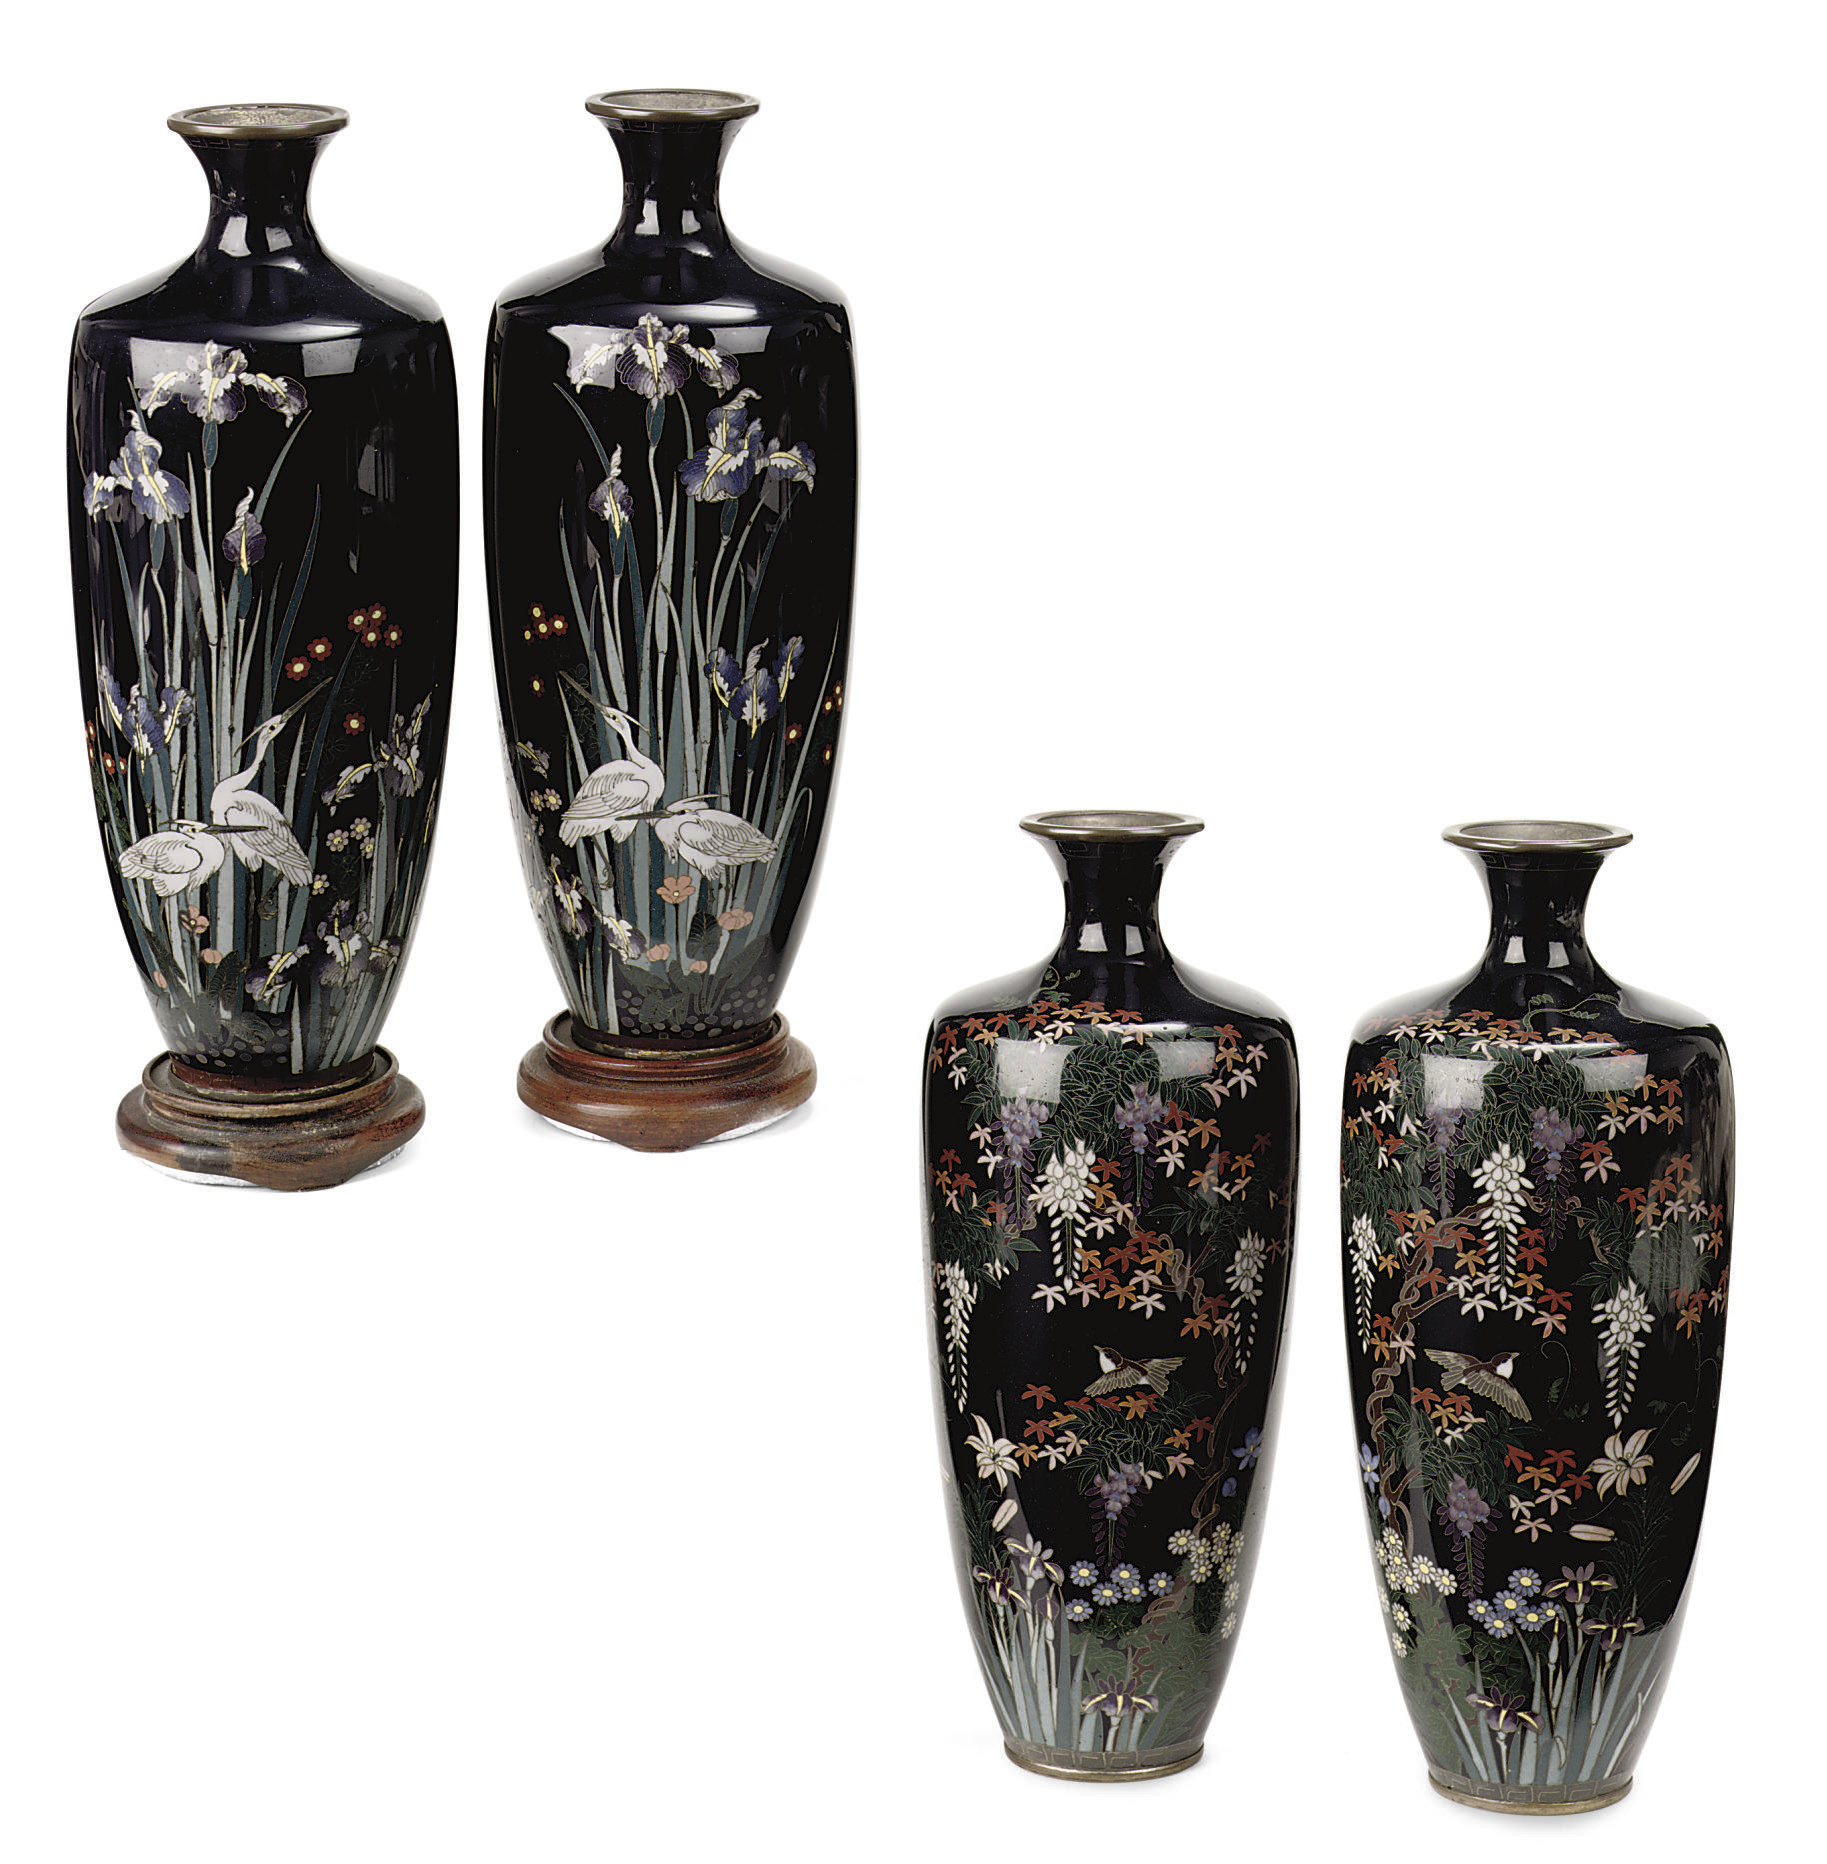 Two pairs of Japanese cloisonn